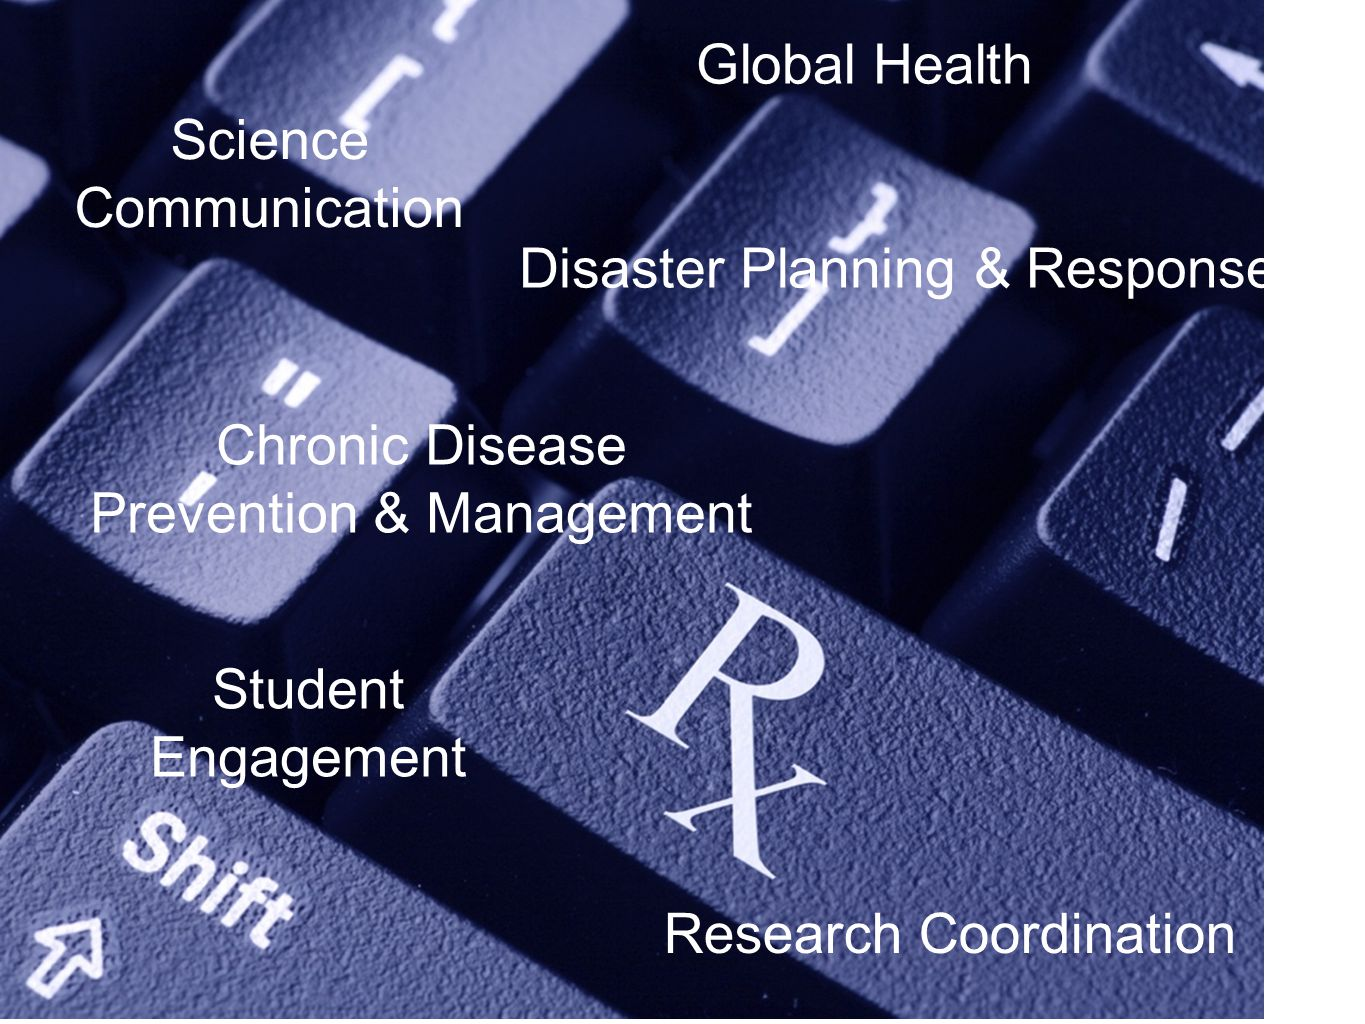 Science Communication Disaster Planning & Response Chronic Disease Prevention & Management Global Health Research Coordination Student Engagement